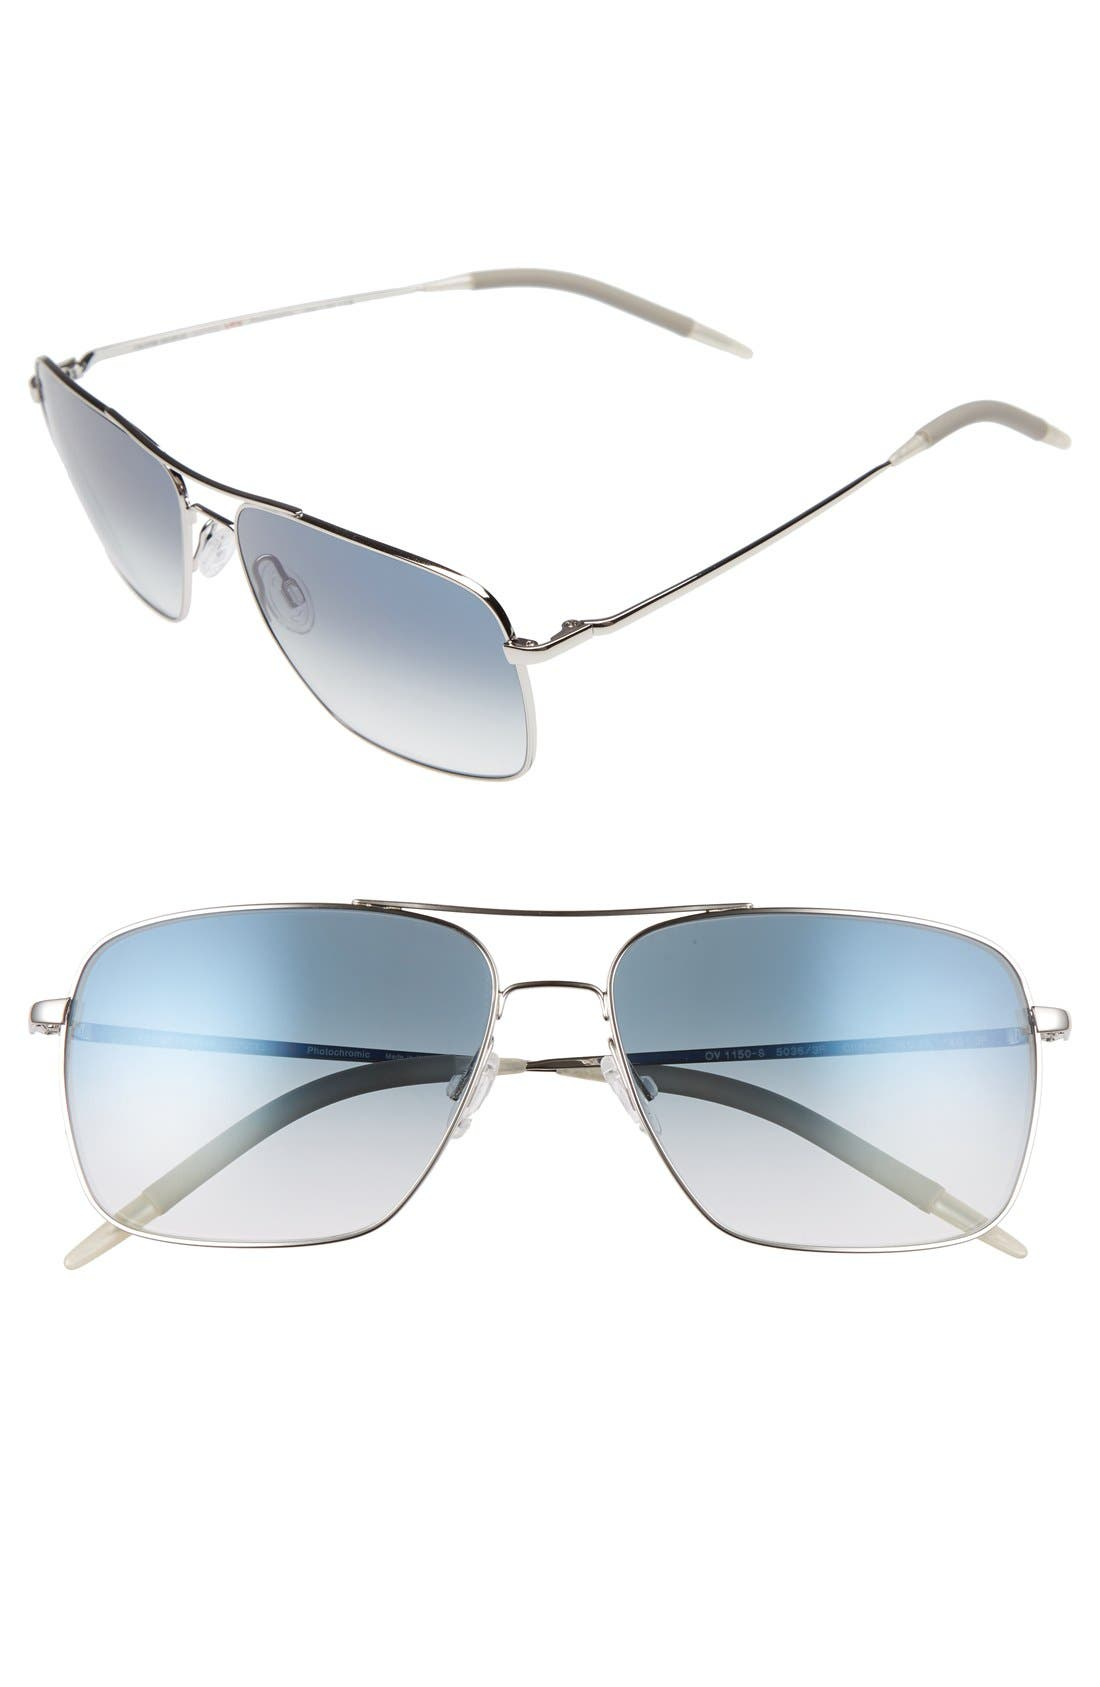 Clifton 58mm Aviator Sunglasses,                             Main thumbnail 1, color,                             SILVER